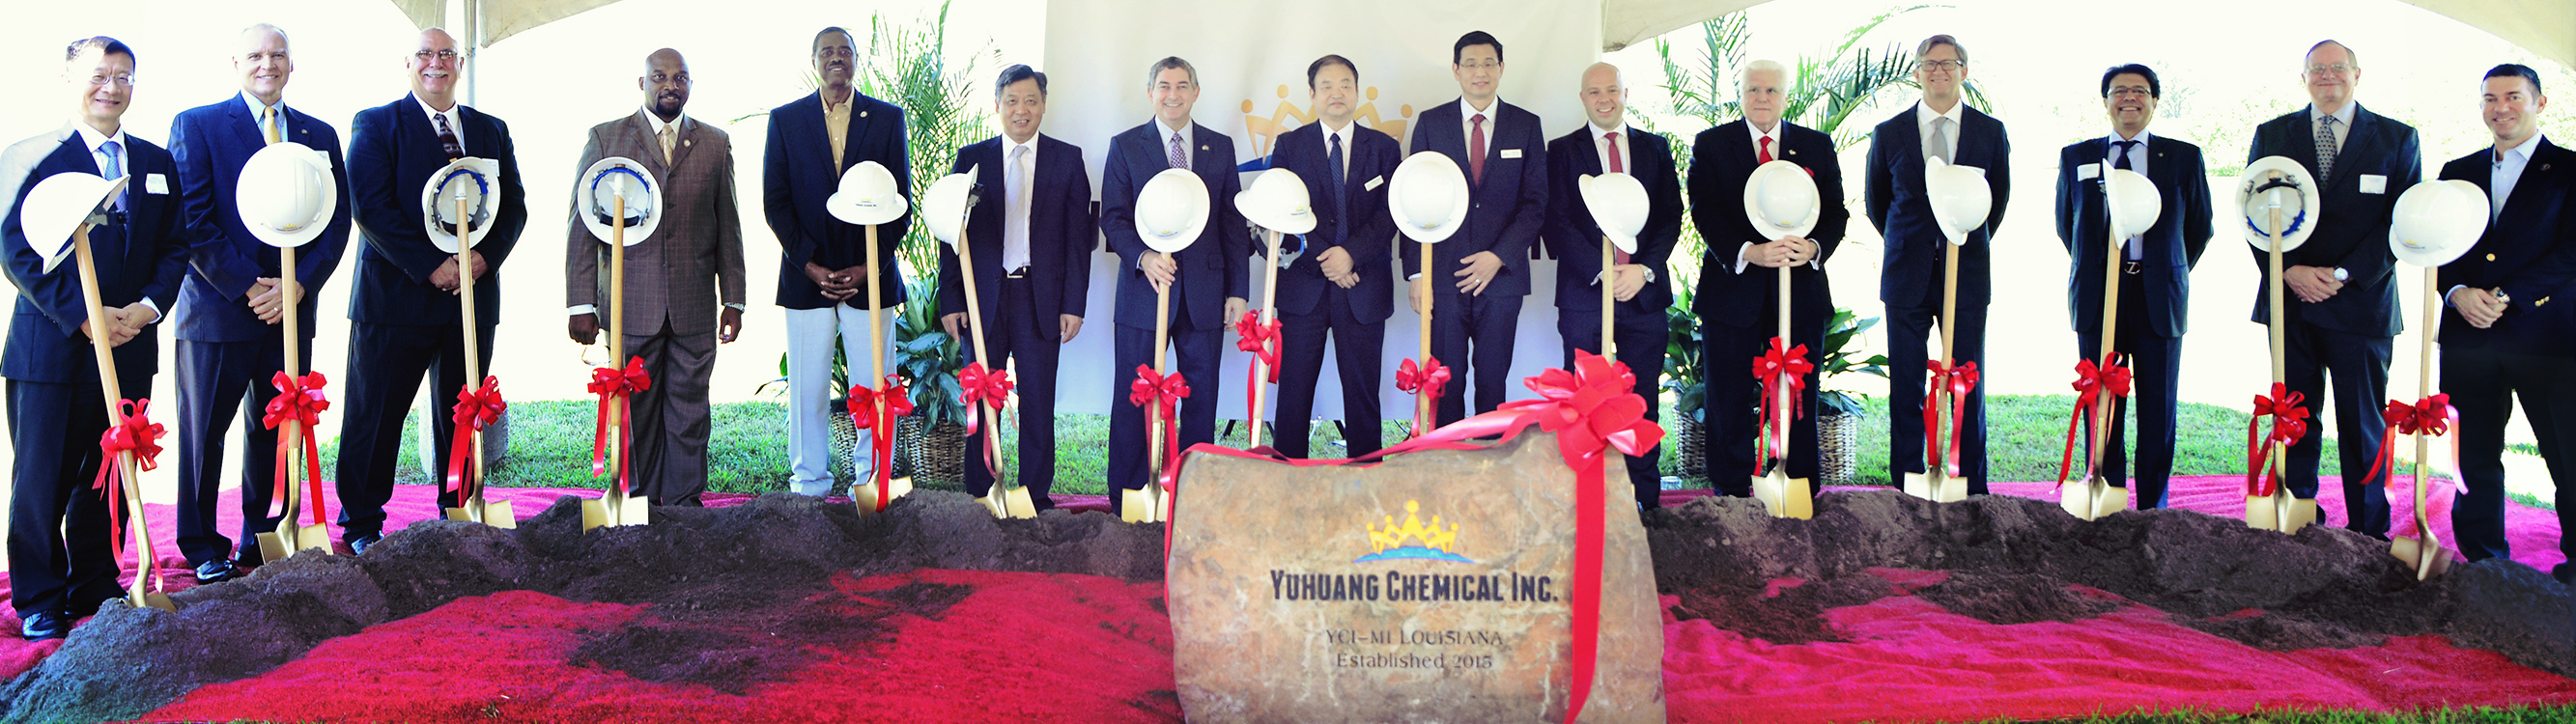 YuhuangChemical-Groundbreaking-IntBanner.jpg